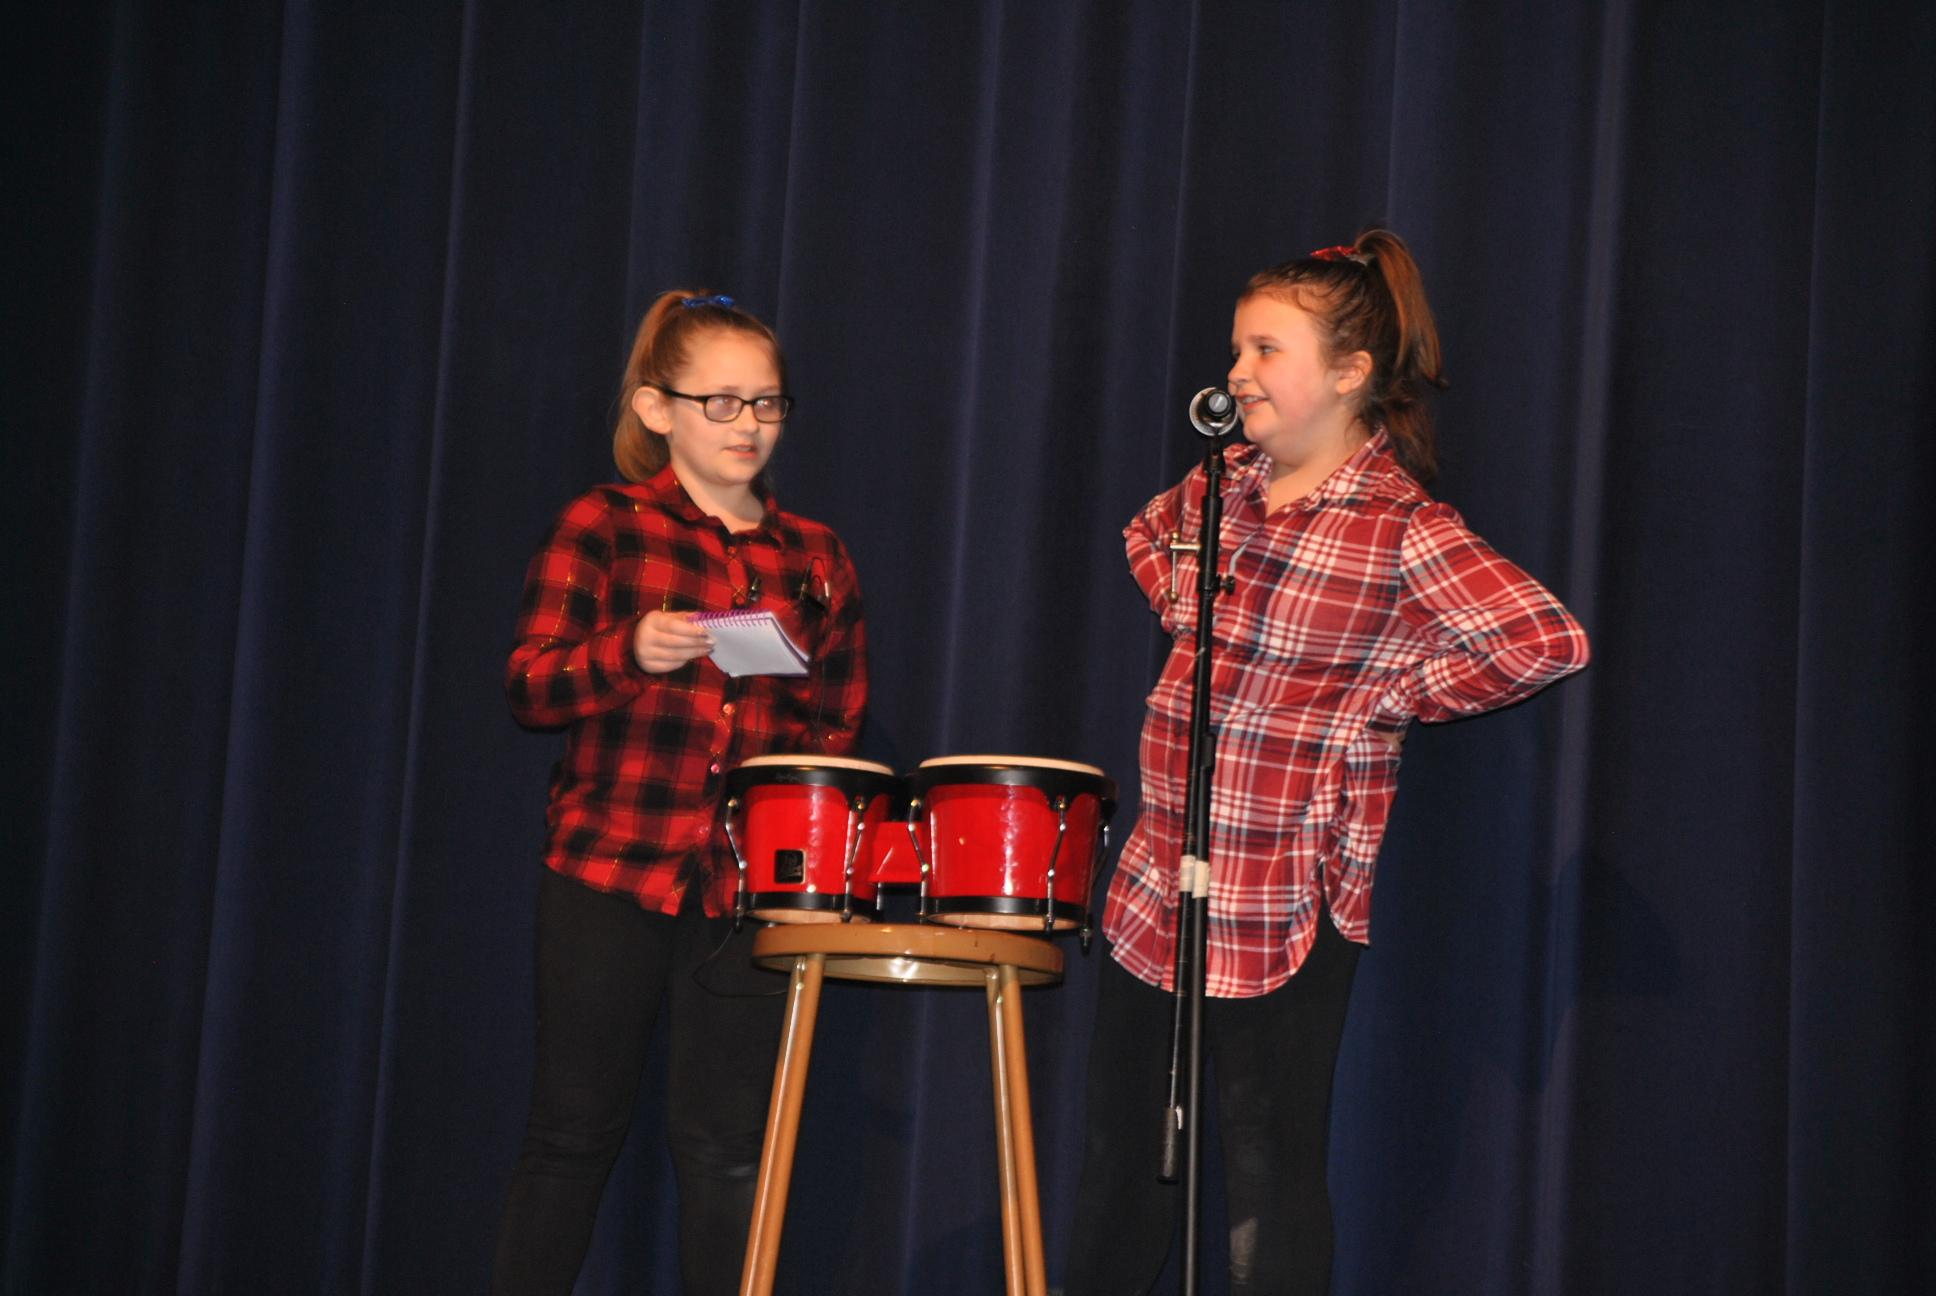 Students doing comedy